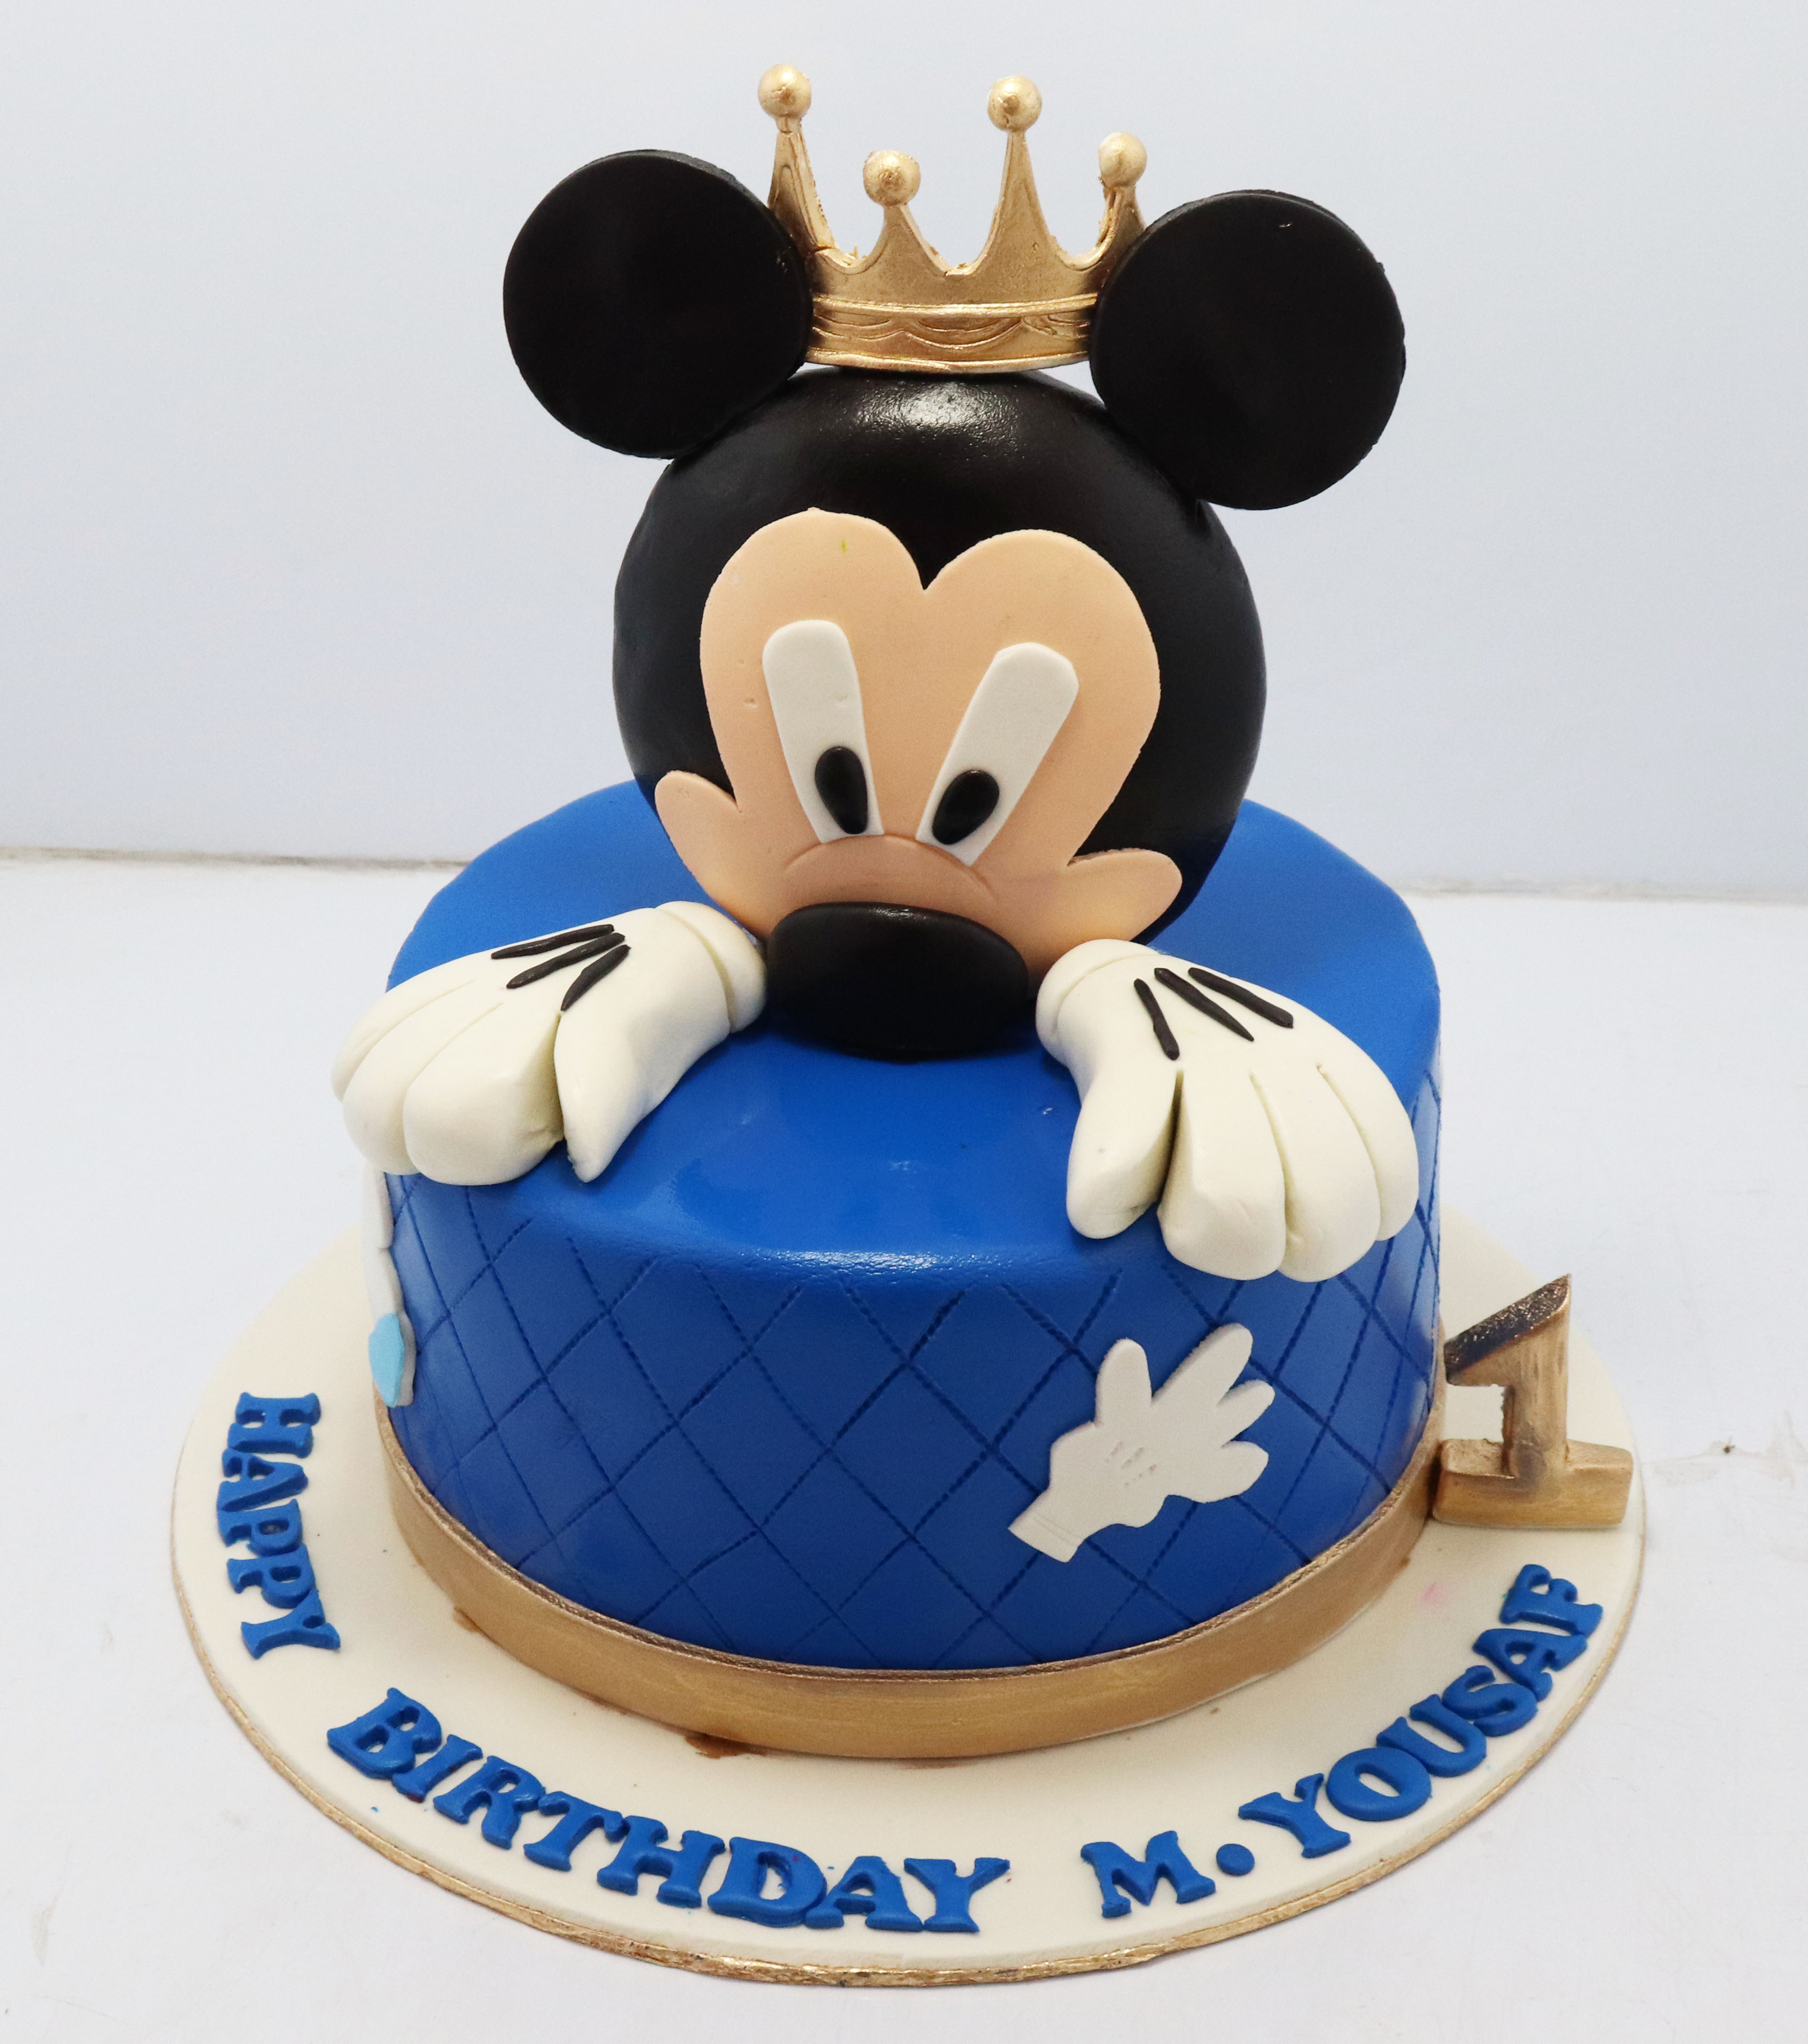 Remarkable Mickey Mouse Kids Birthday Cake Bakisto Pk Lahore Free Delivery Personalised Birthday Cards Beptaeletsinfo